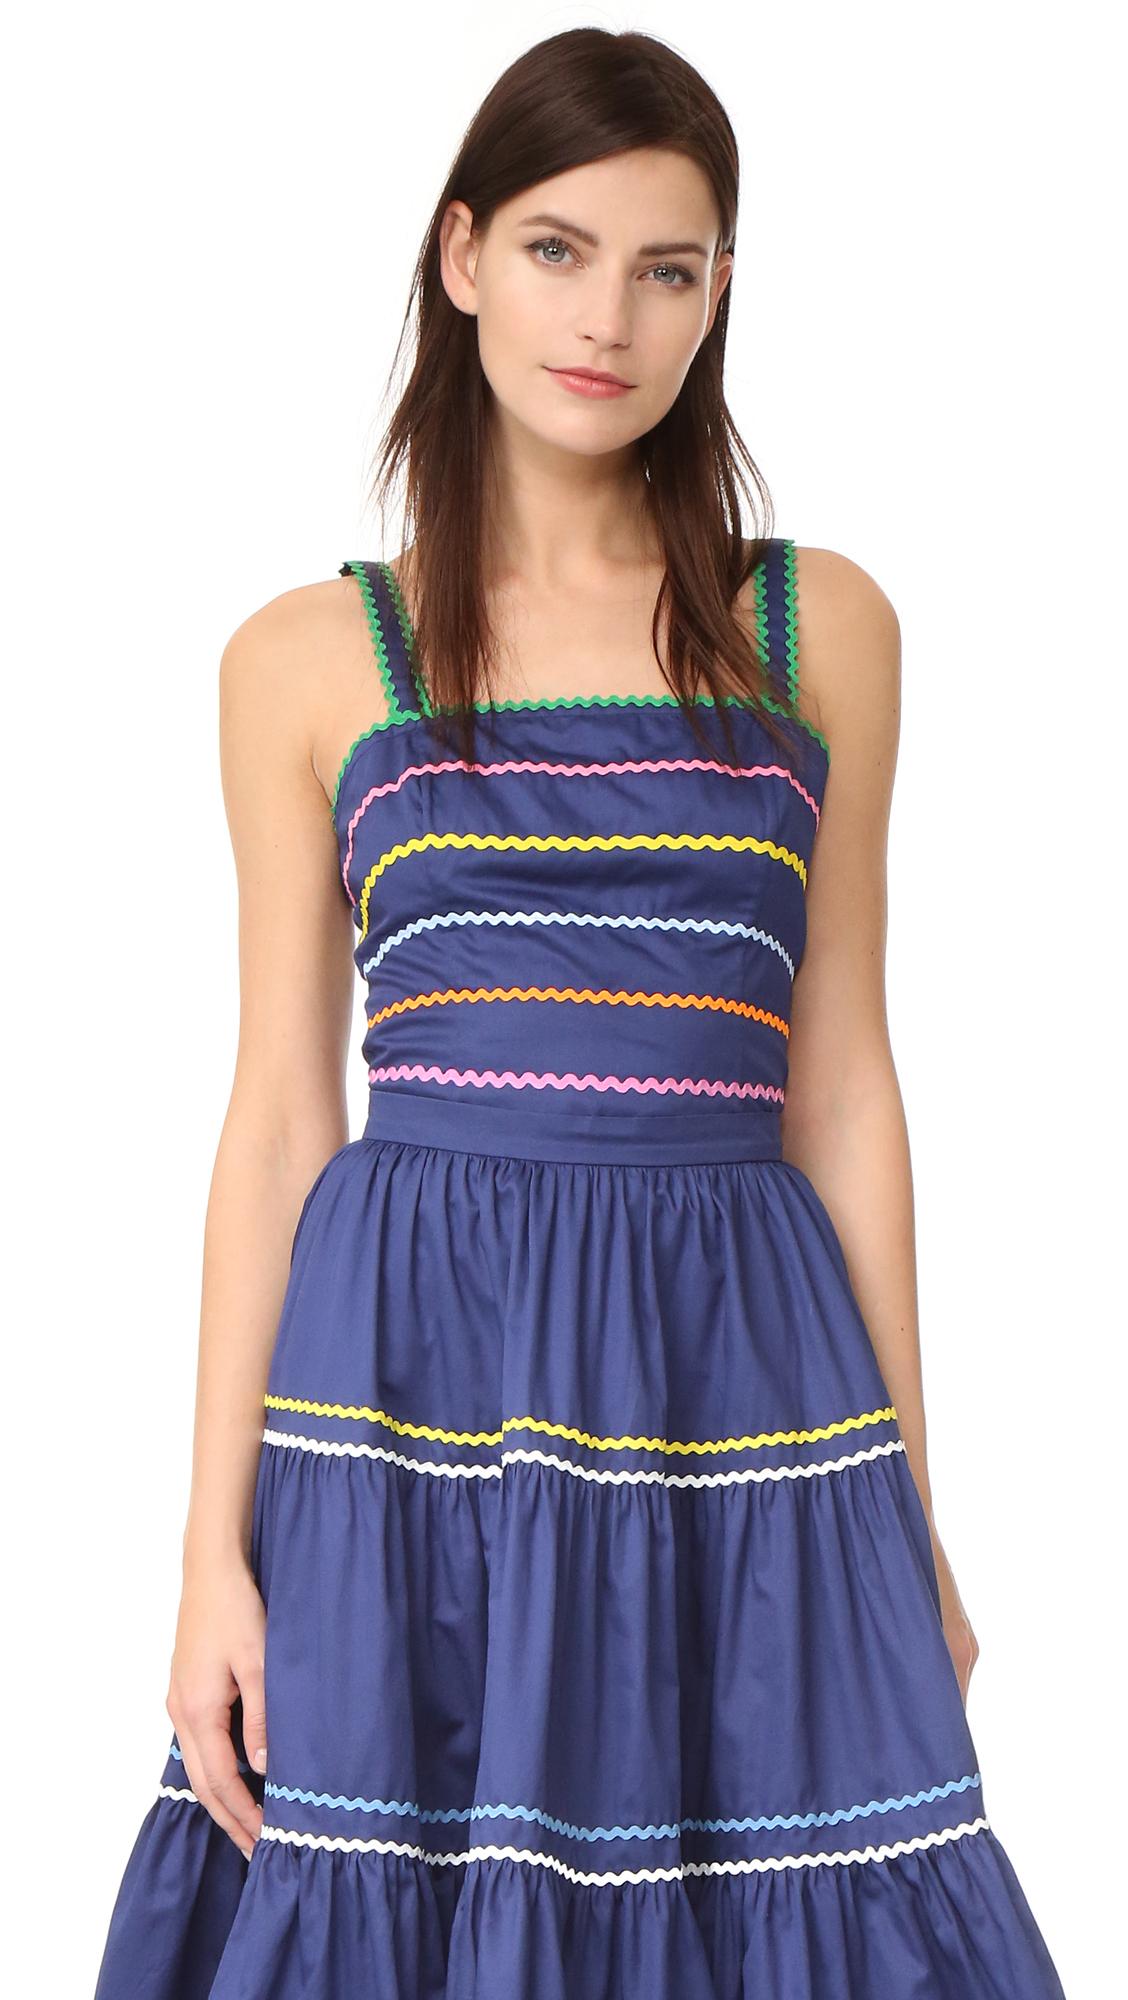 Anna October Sleeveless Top - Navy Multi